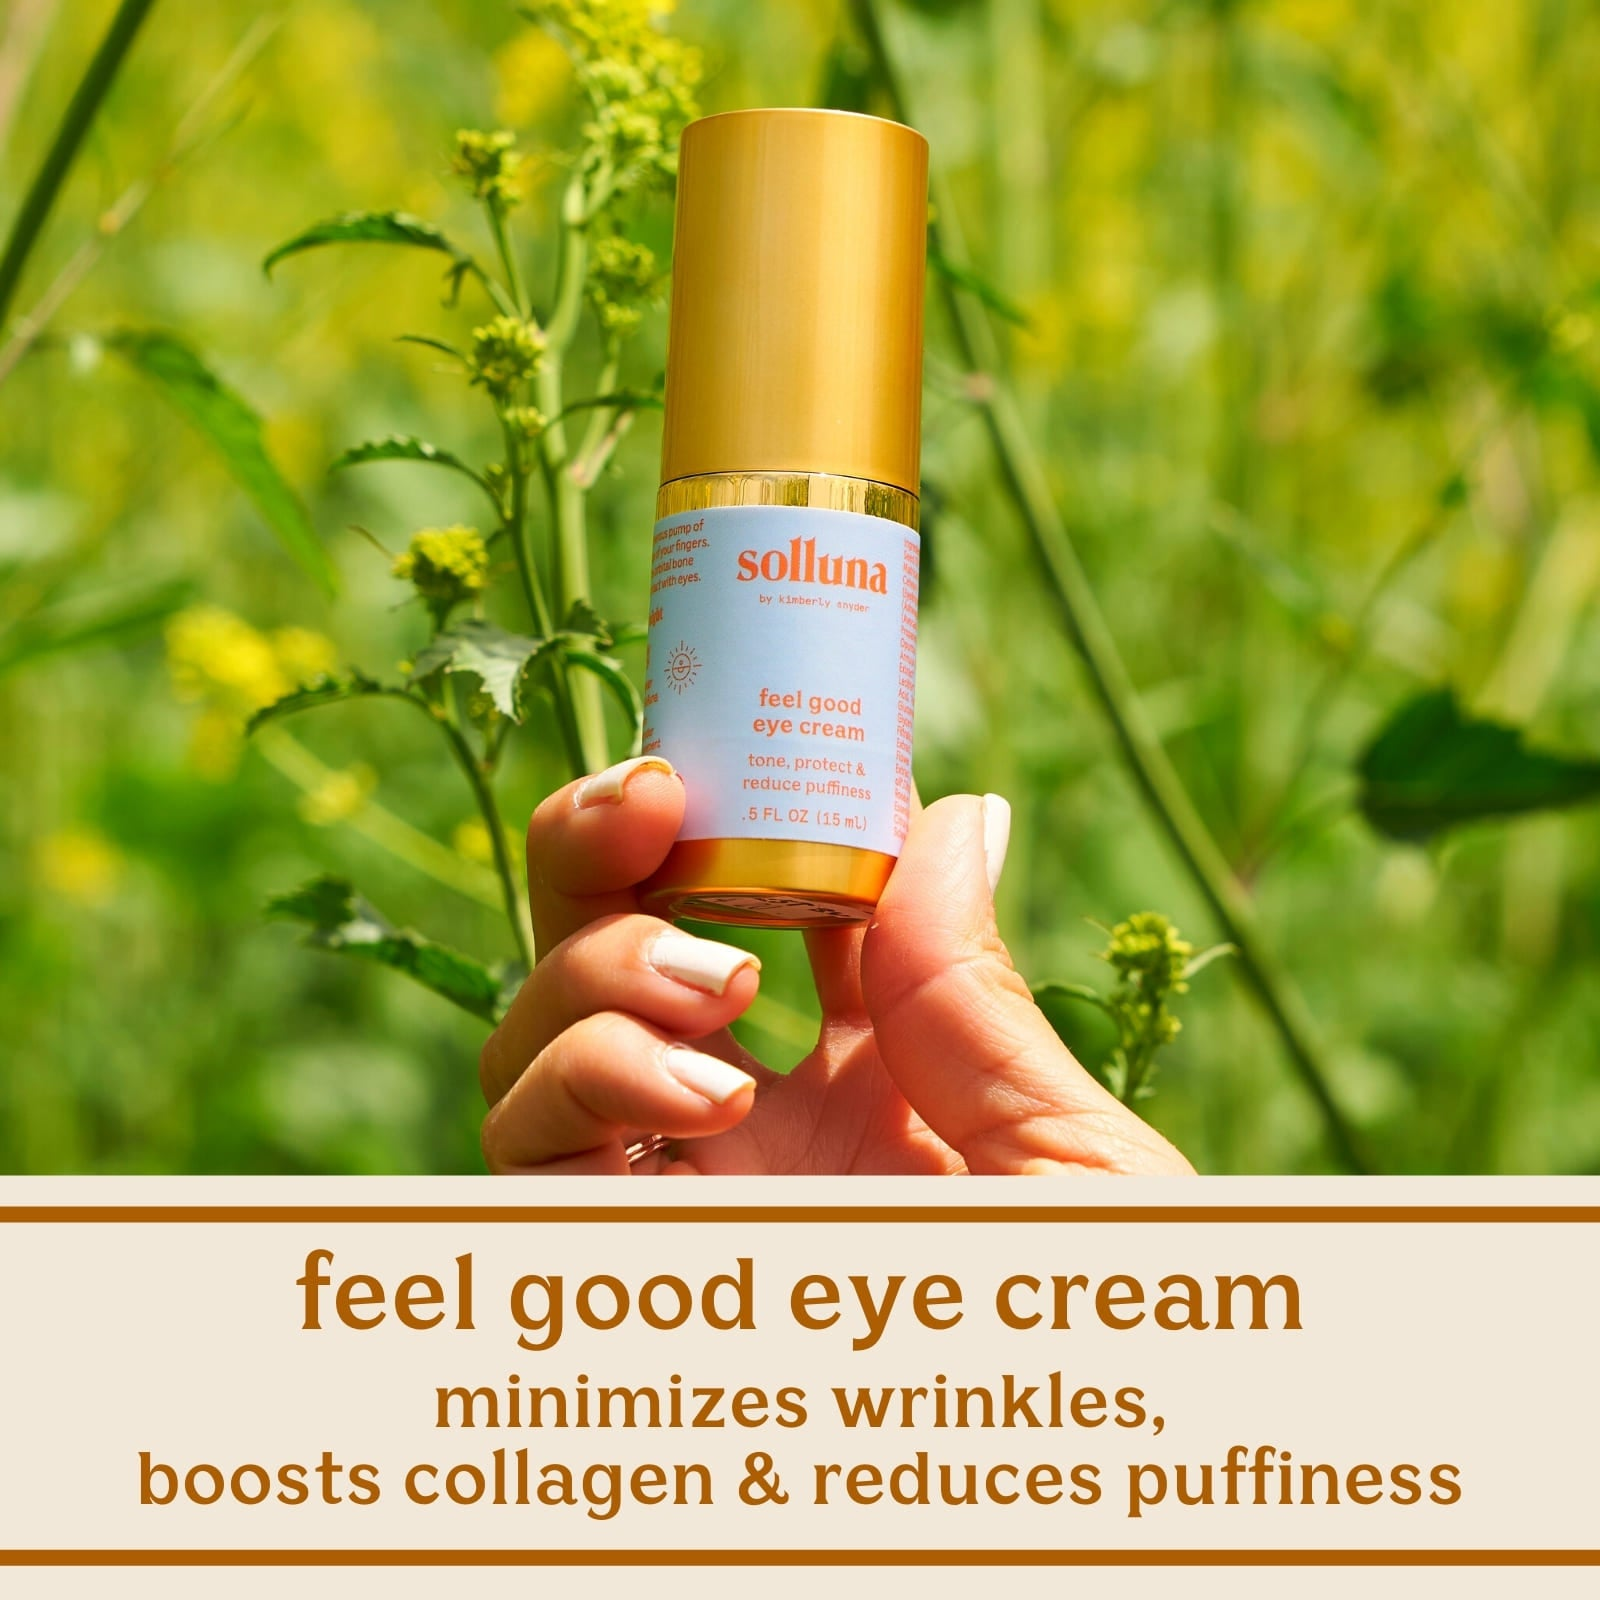 Solluna's Feel Good Eye Cream Minimizes Wrinkles, Boosts Collagen & Reduces Puffiness